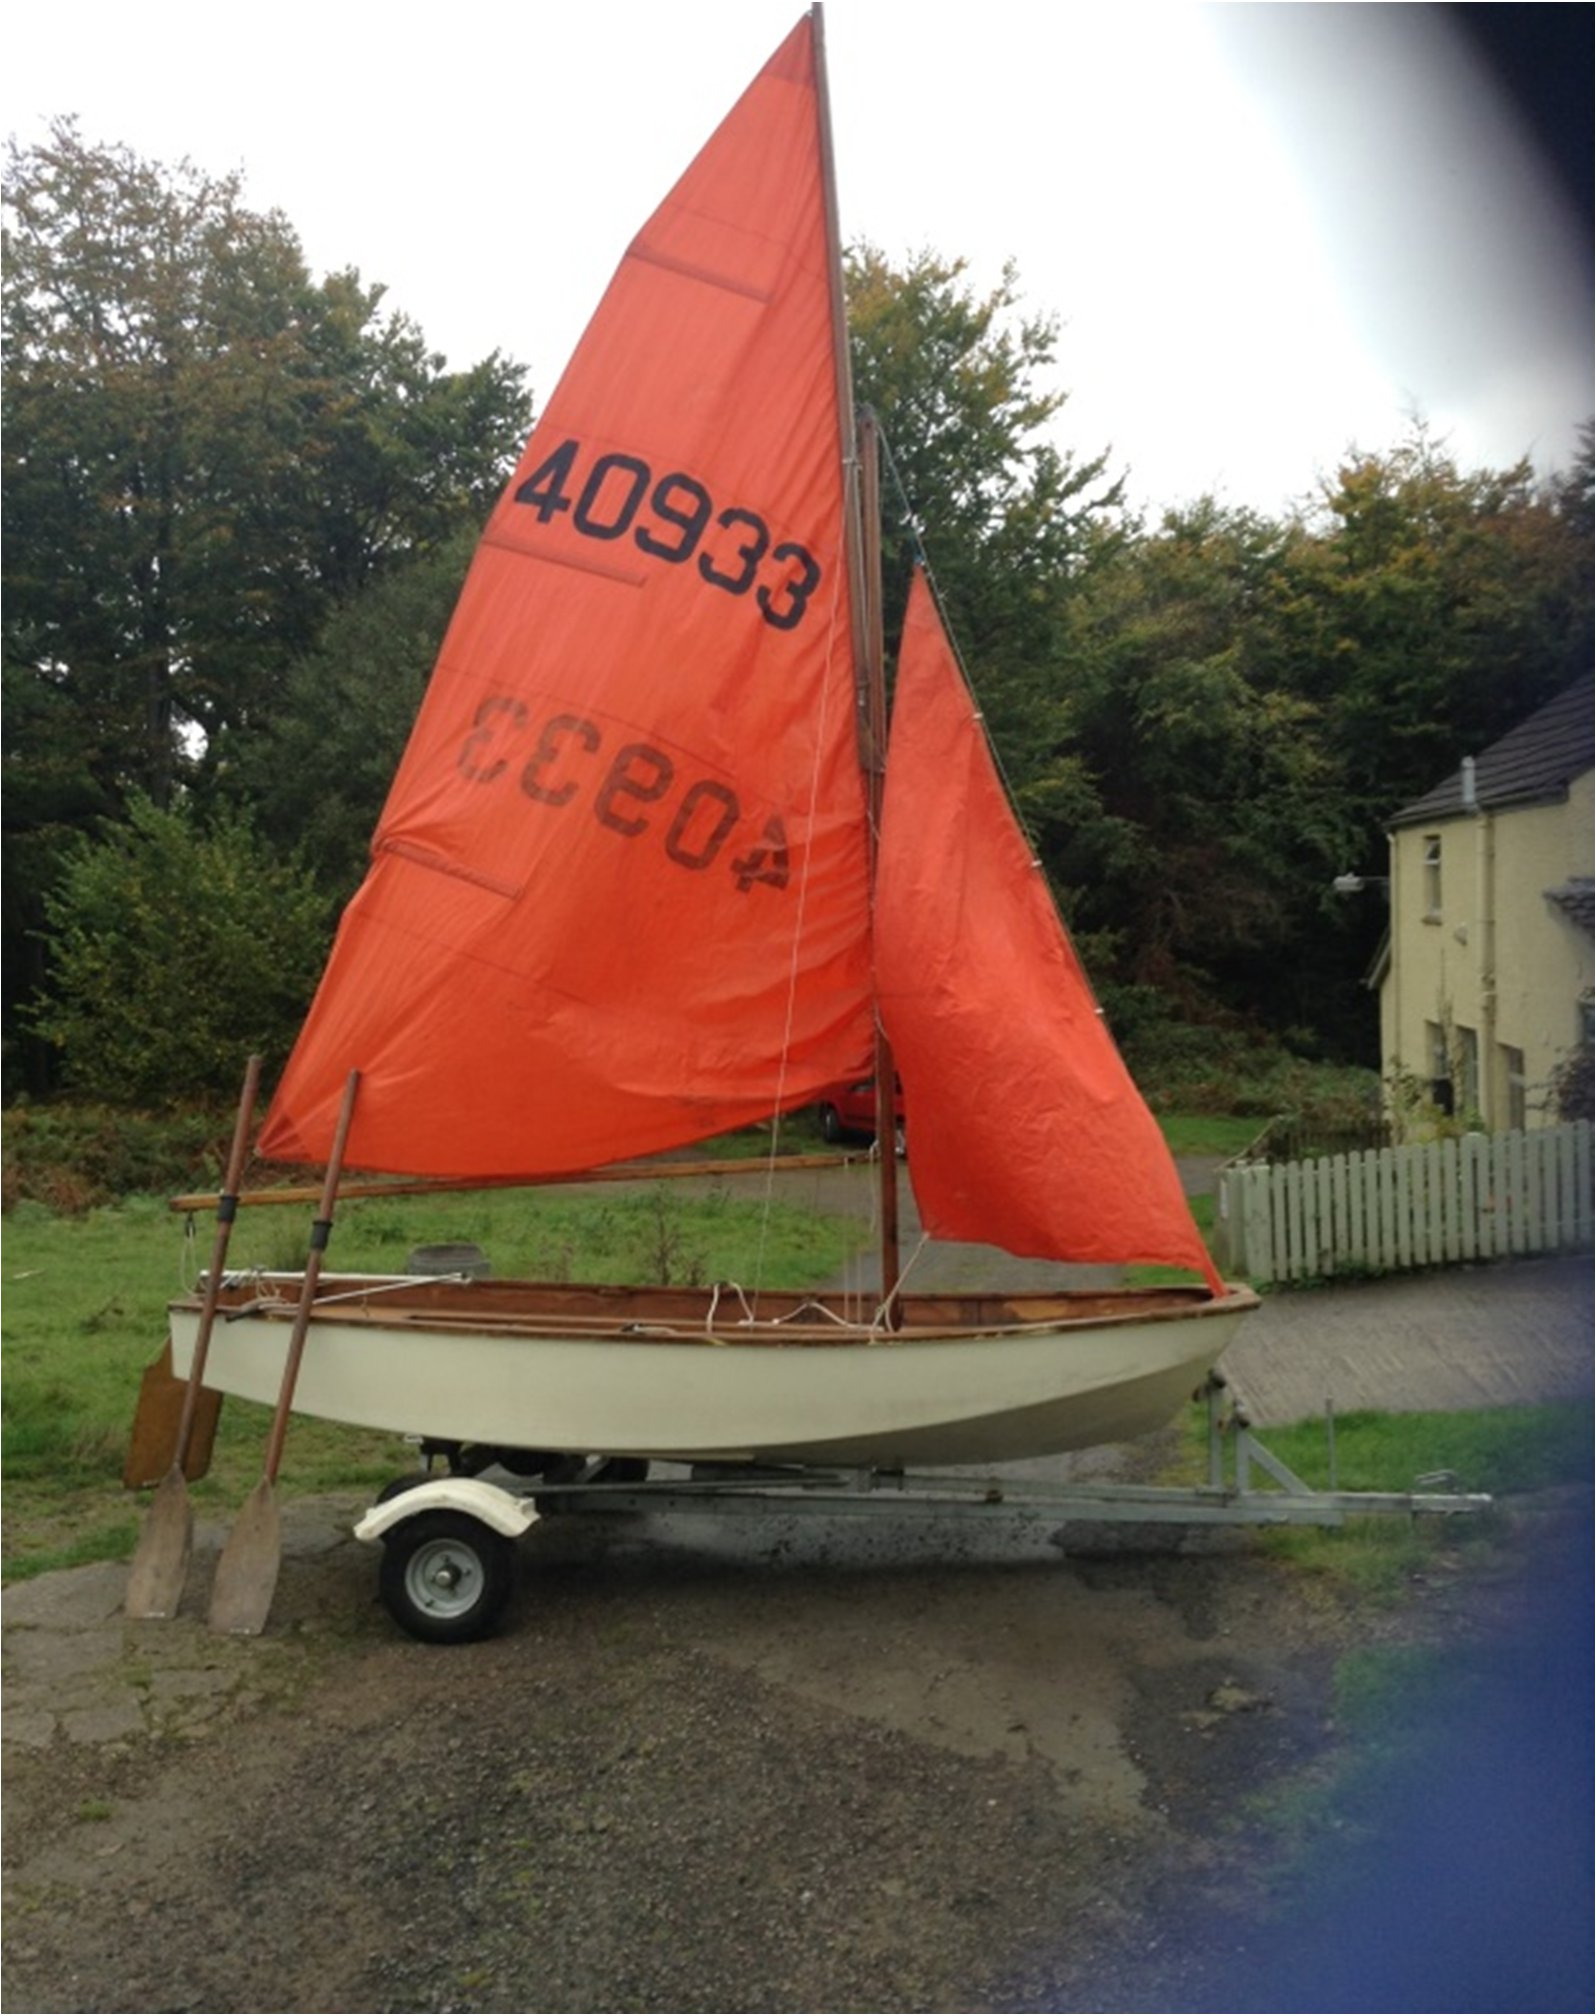 A white wooden Mirror dinghy rigged up on a combination trailer/trolley